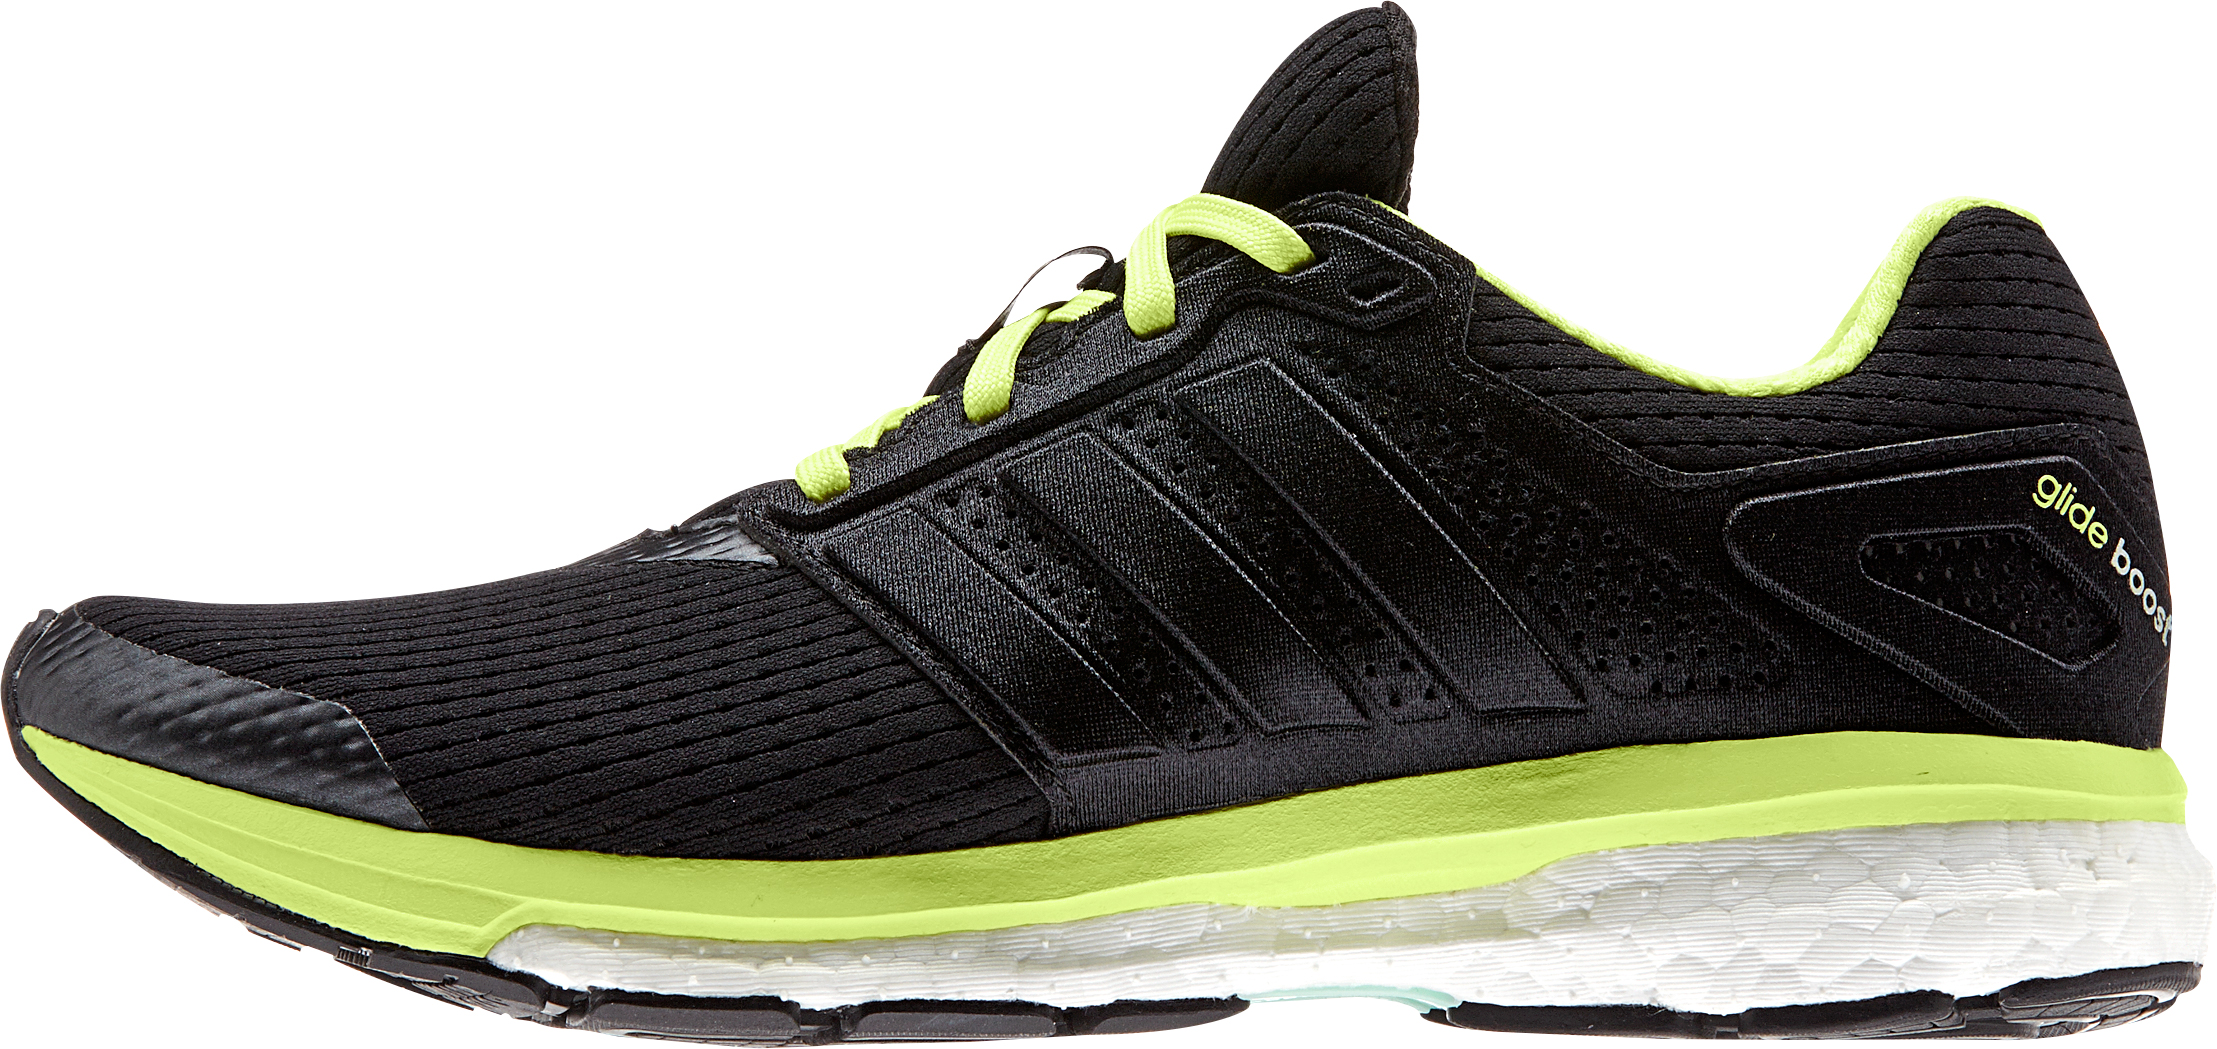 adidas glide boost womens black